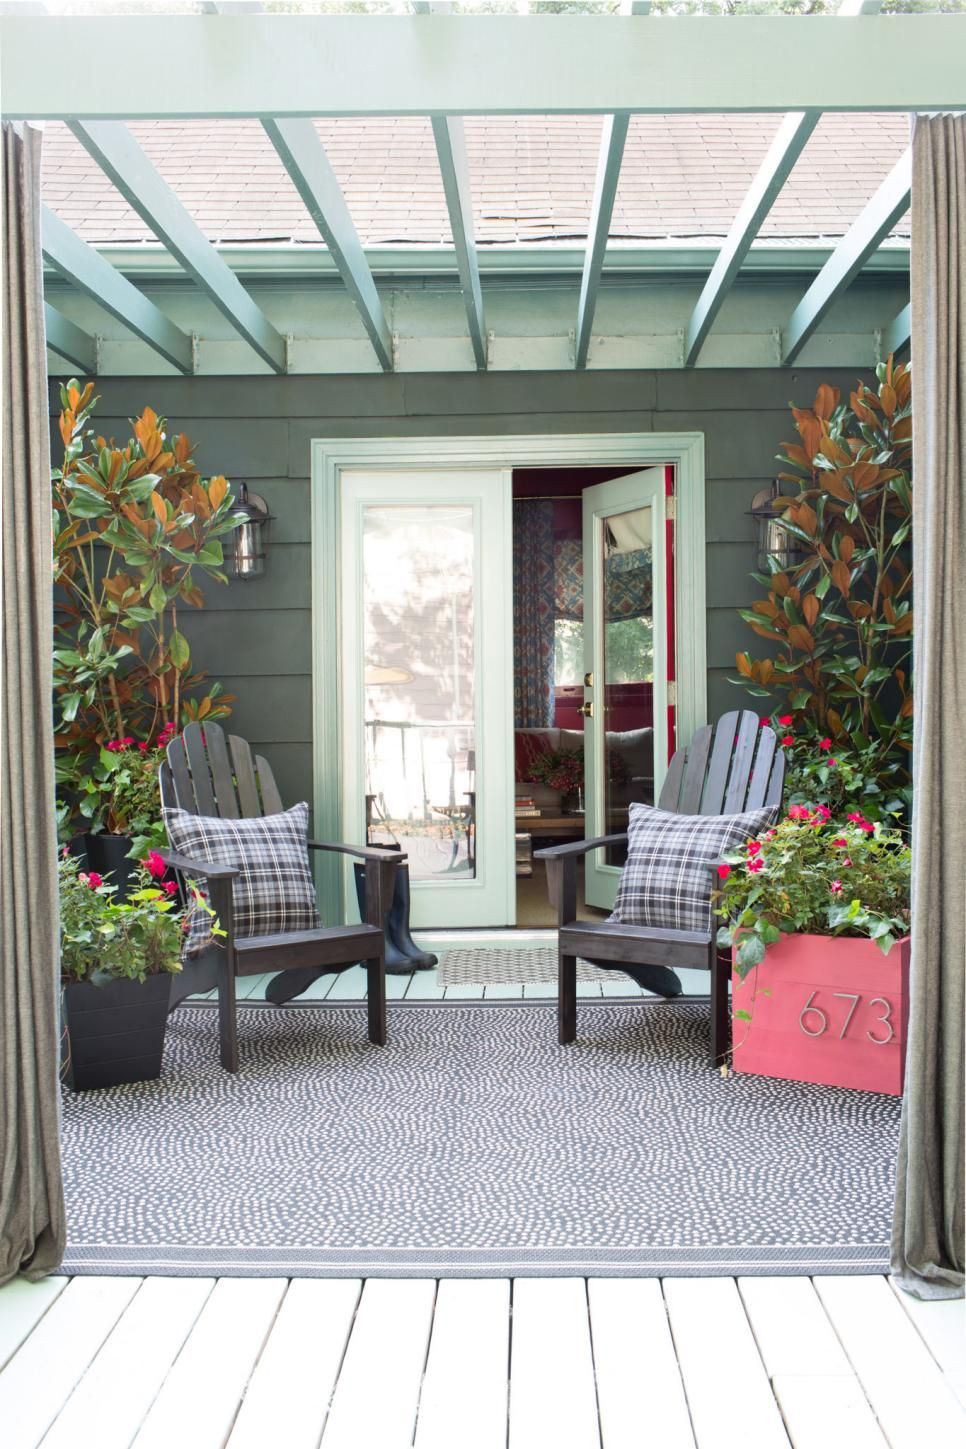 Get your porch or deck ready for fall guests with these simple updates and decorating ideas.